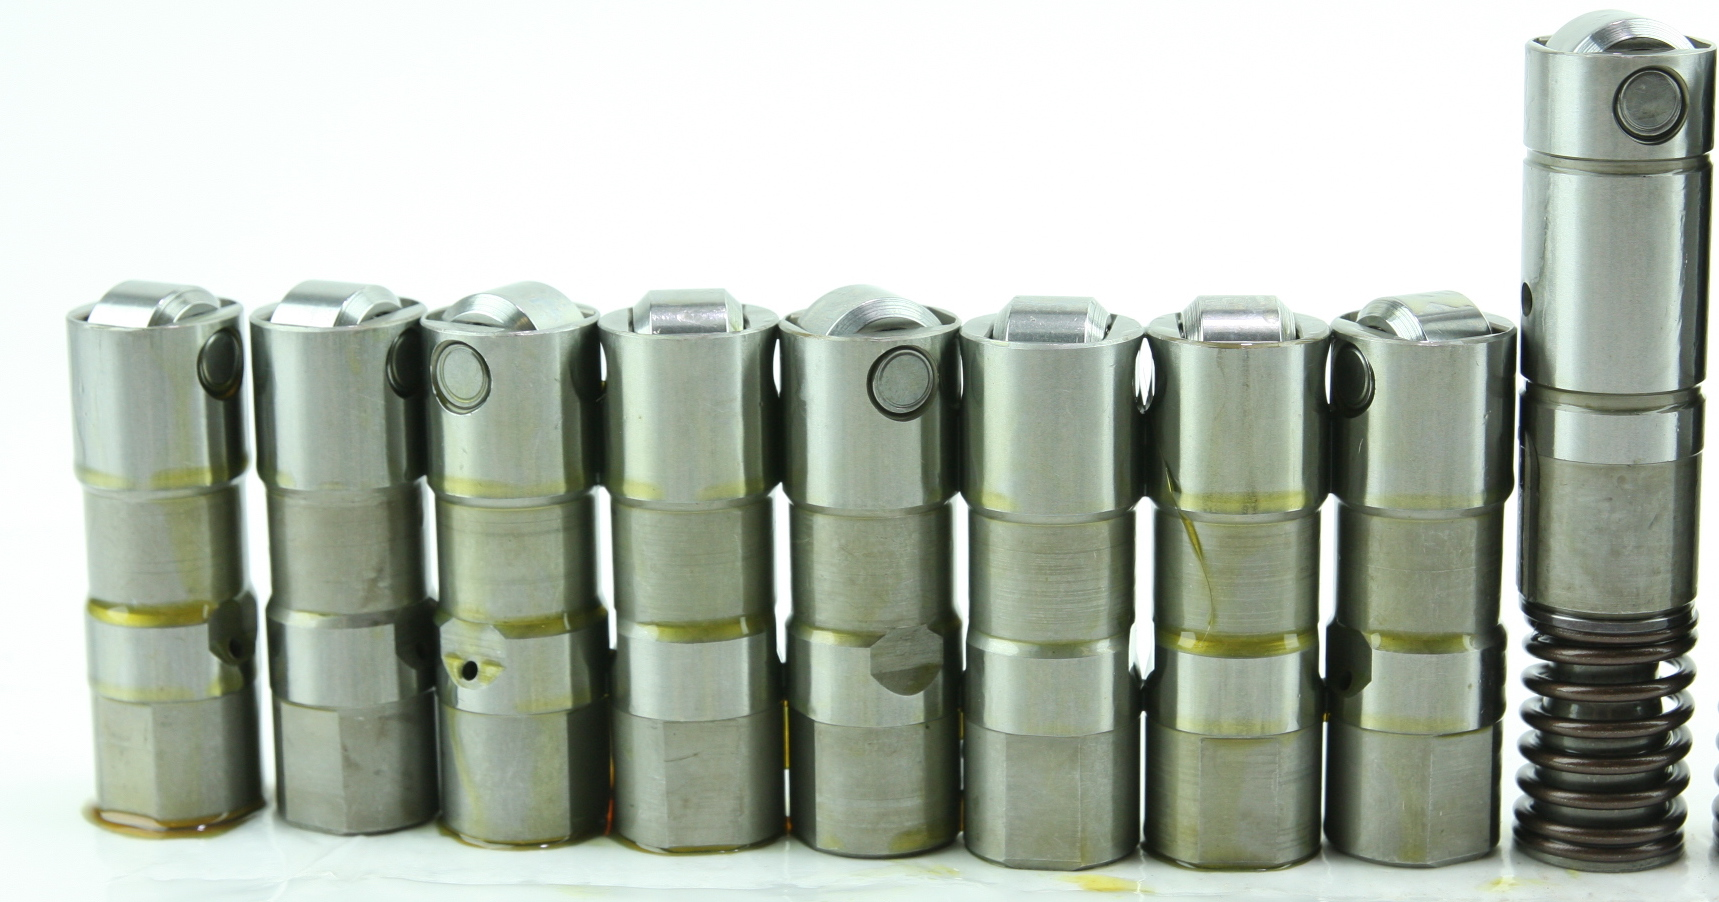 16 Genuine OEM GM Valve Lifters LS w/ AFM Active Fuel DOD Displacement on Demand - image 4